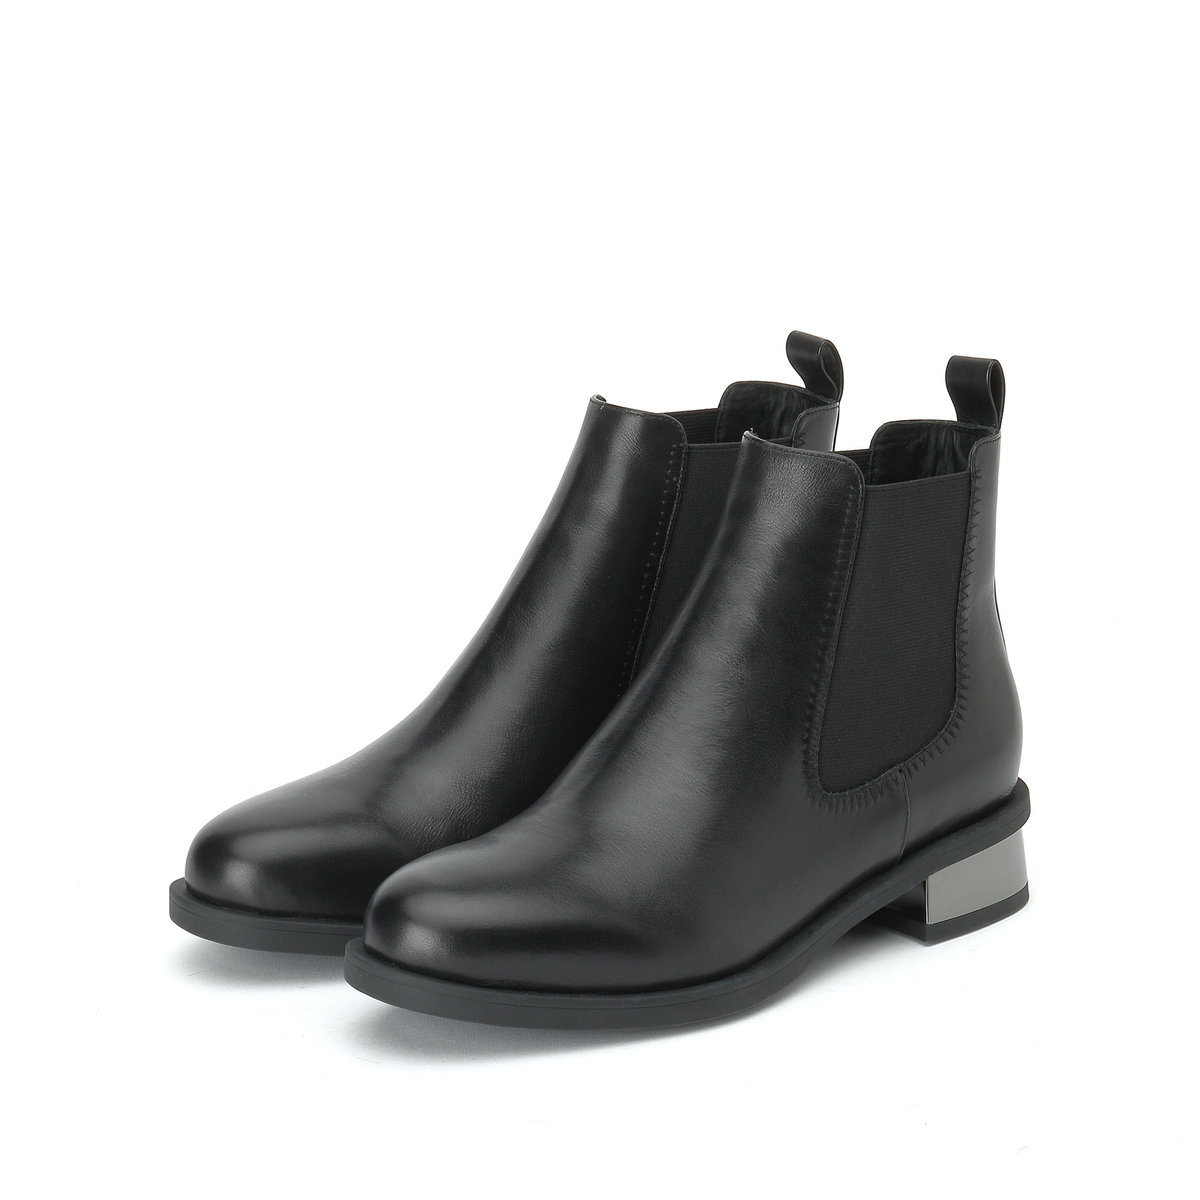 Calf Leather Chelsea Boots in Black